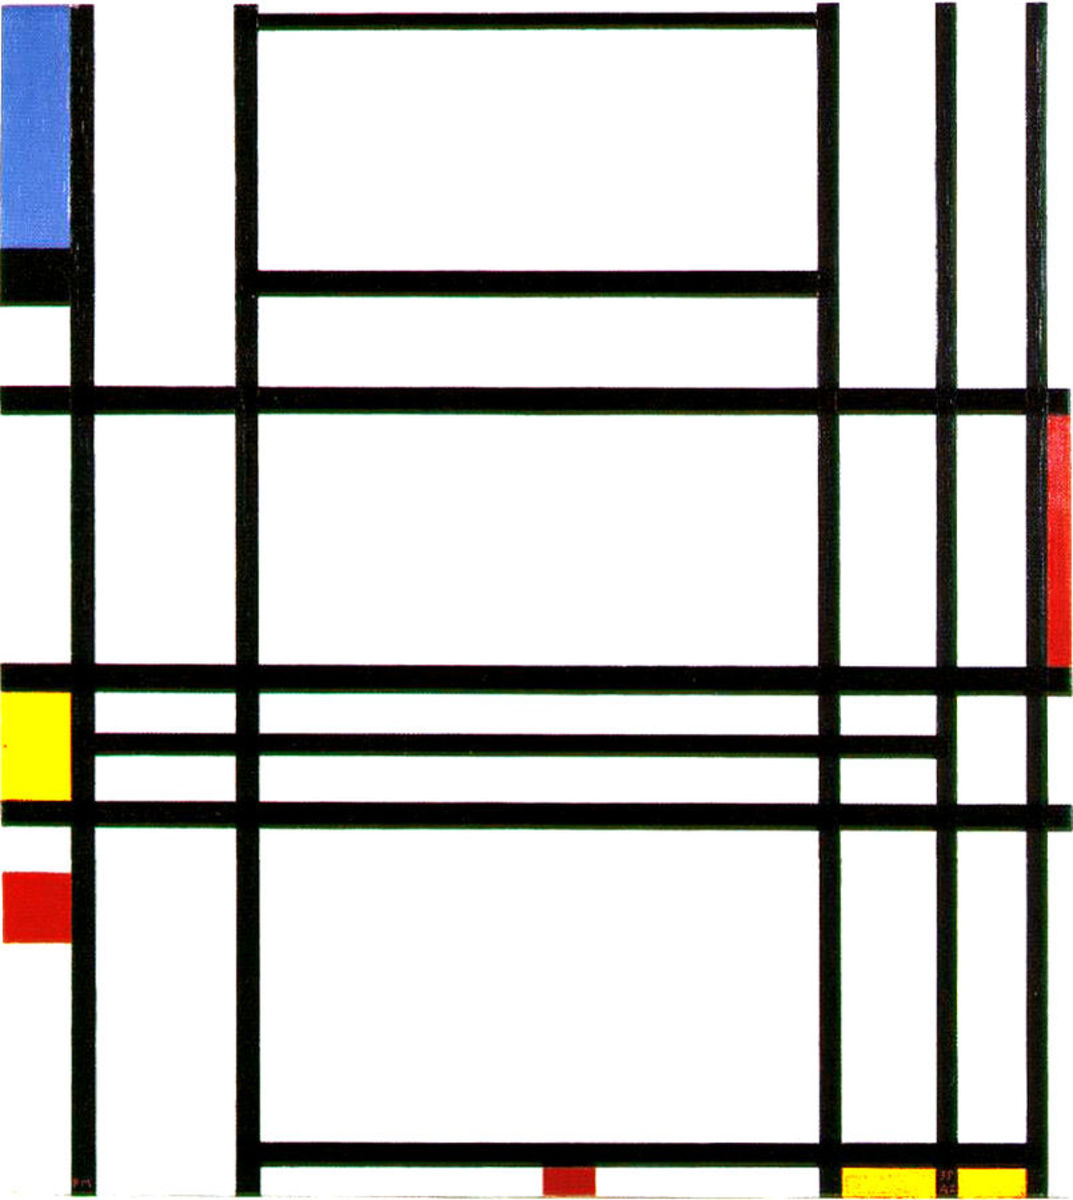 Example of an hard-edge painting by Piet Mondriaan, 1939-1942 - Composition 10.